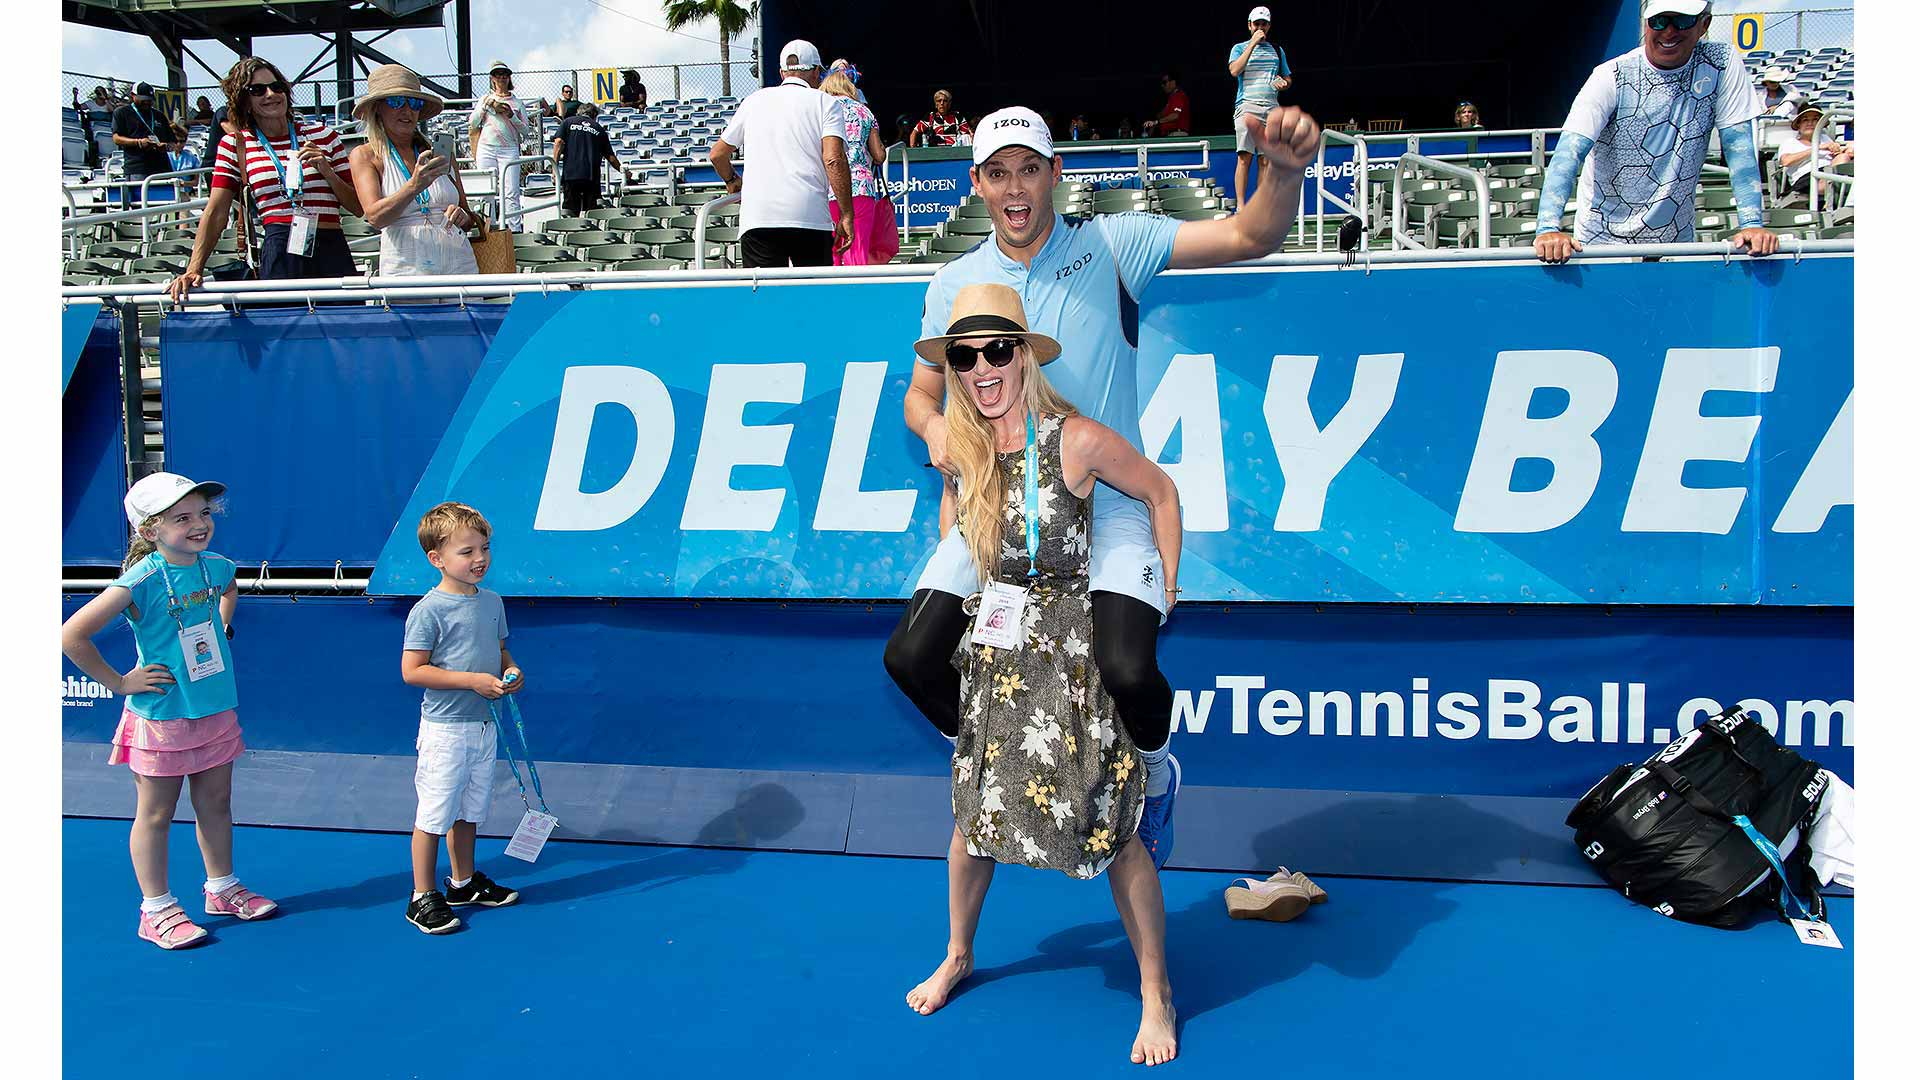 Peter Staples' Best of 2019 pick: Bob Bryan receives a piggyback ride from wife Michelle after winning his first title since returning from hip surgery.